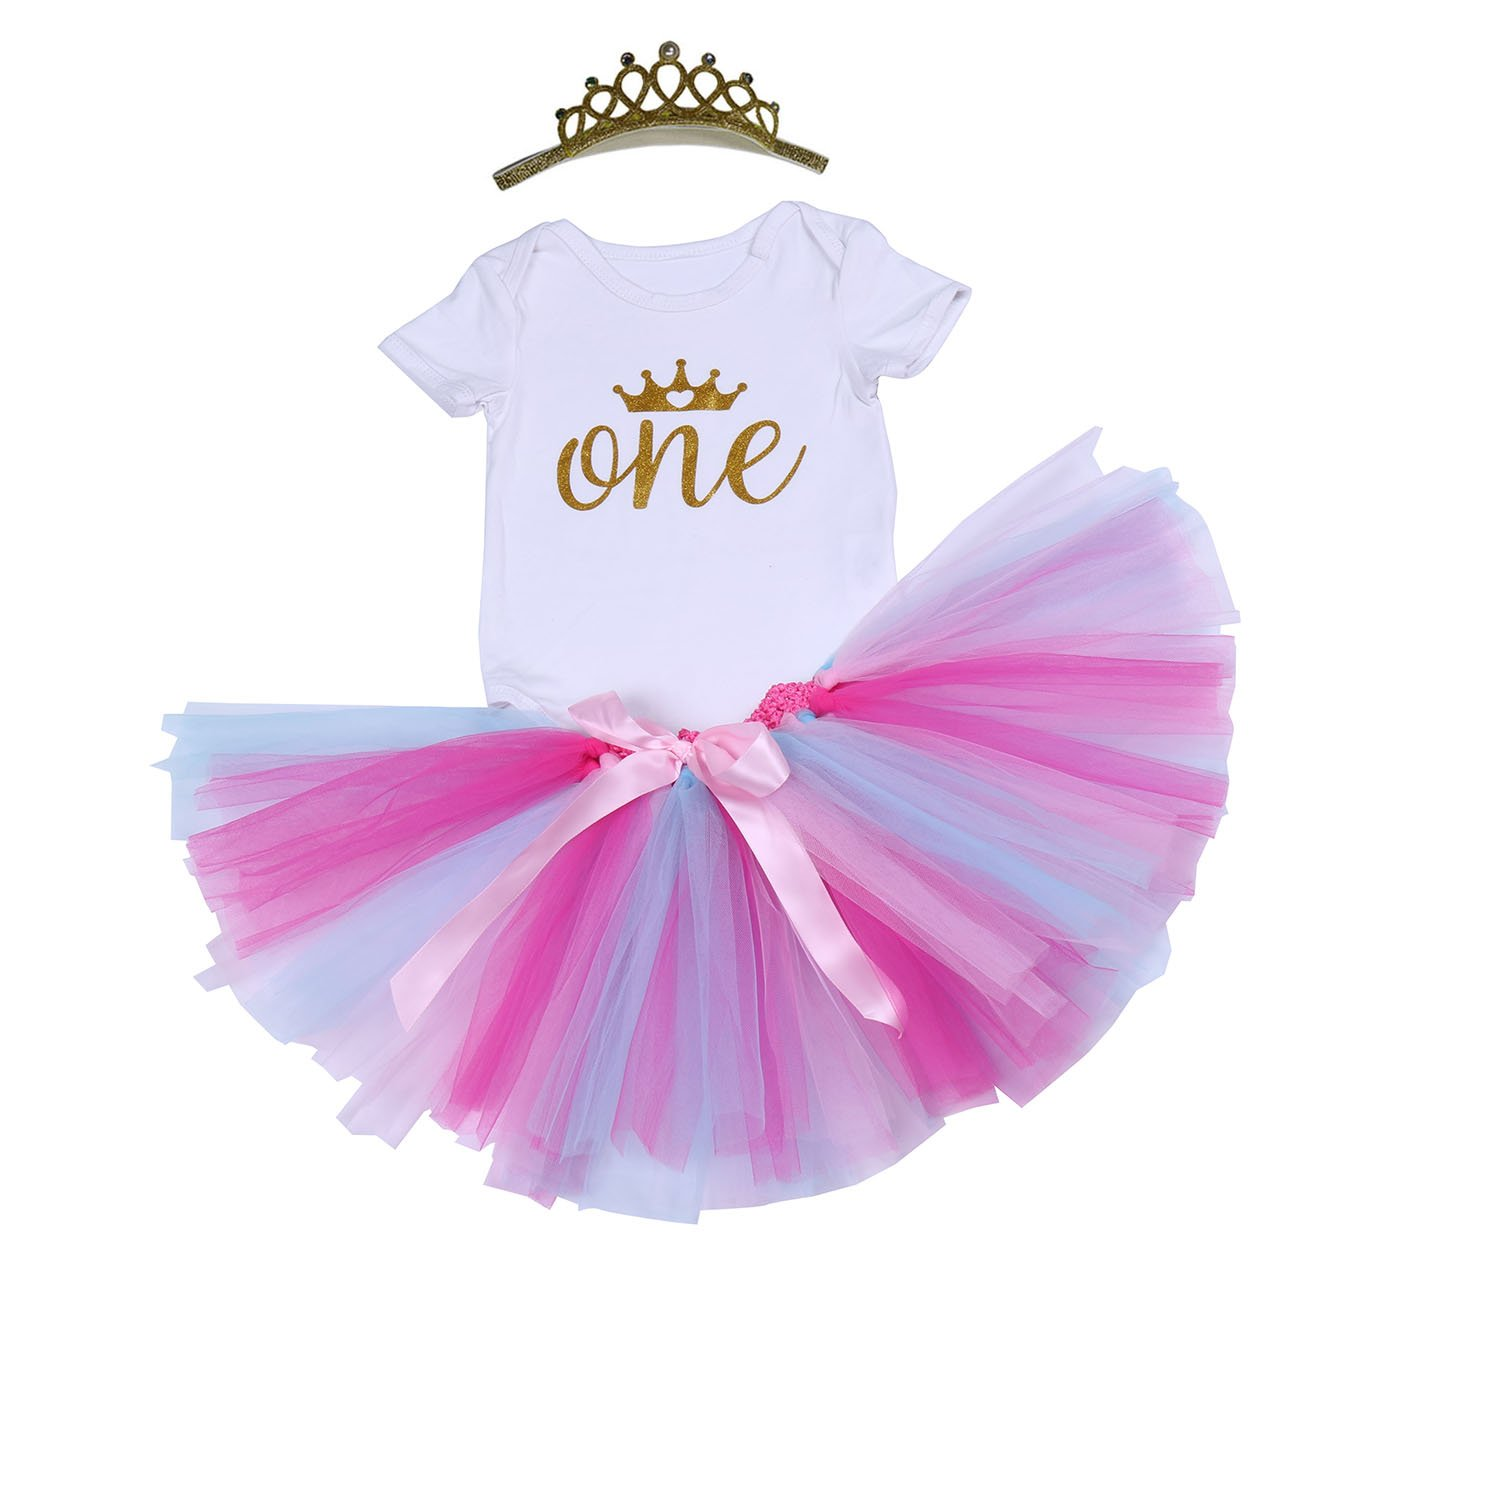 BabyPreg Baby Girls'Rainbow Skirt 3PCs 1st Birthday Tutu Dress Onesie Crown Set